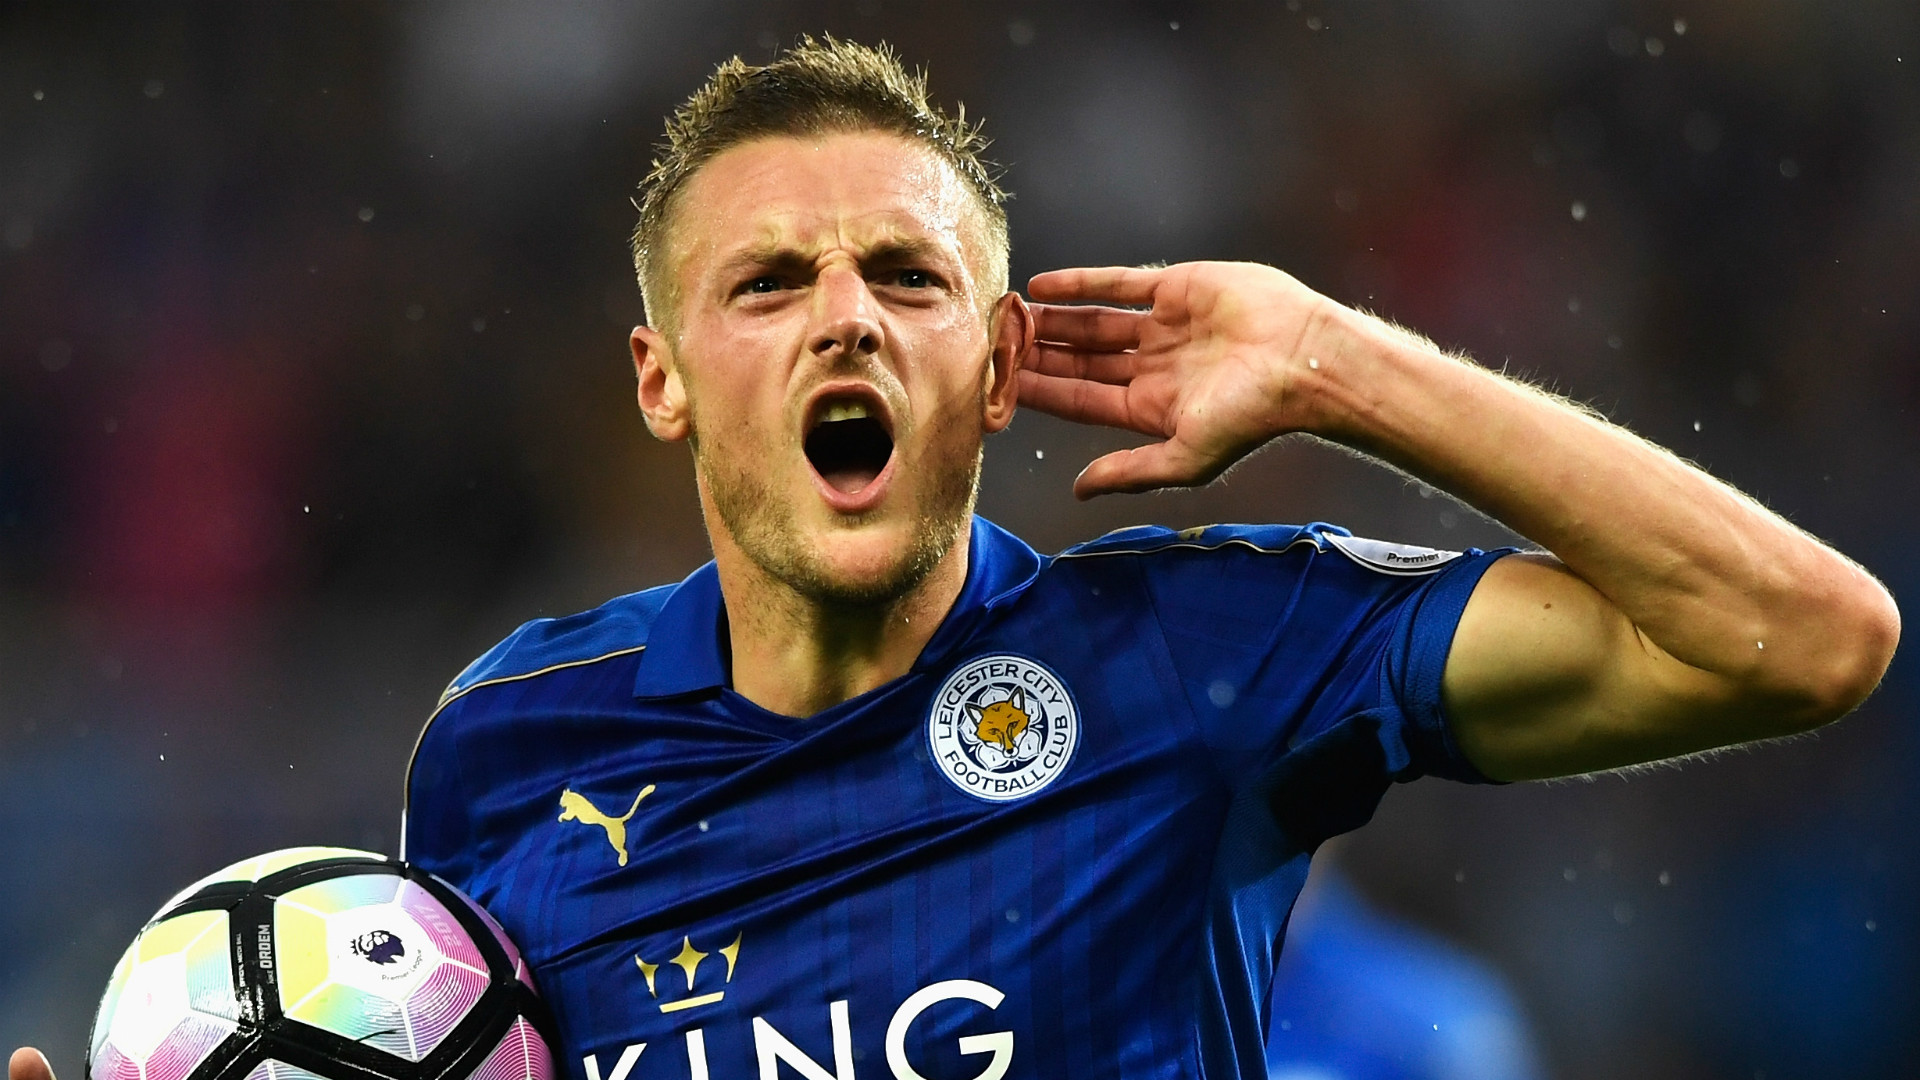 Best decision of my life' – Leicester star Vardy on how he quit factory job to become pro footballer